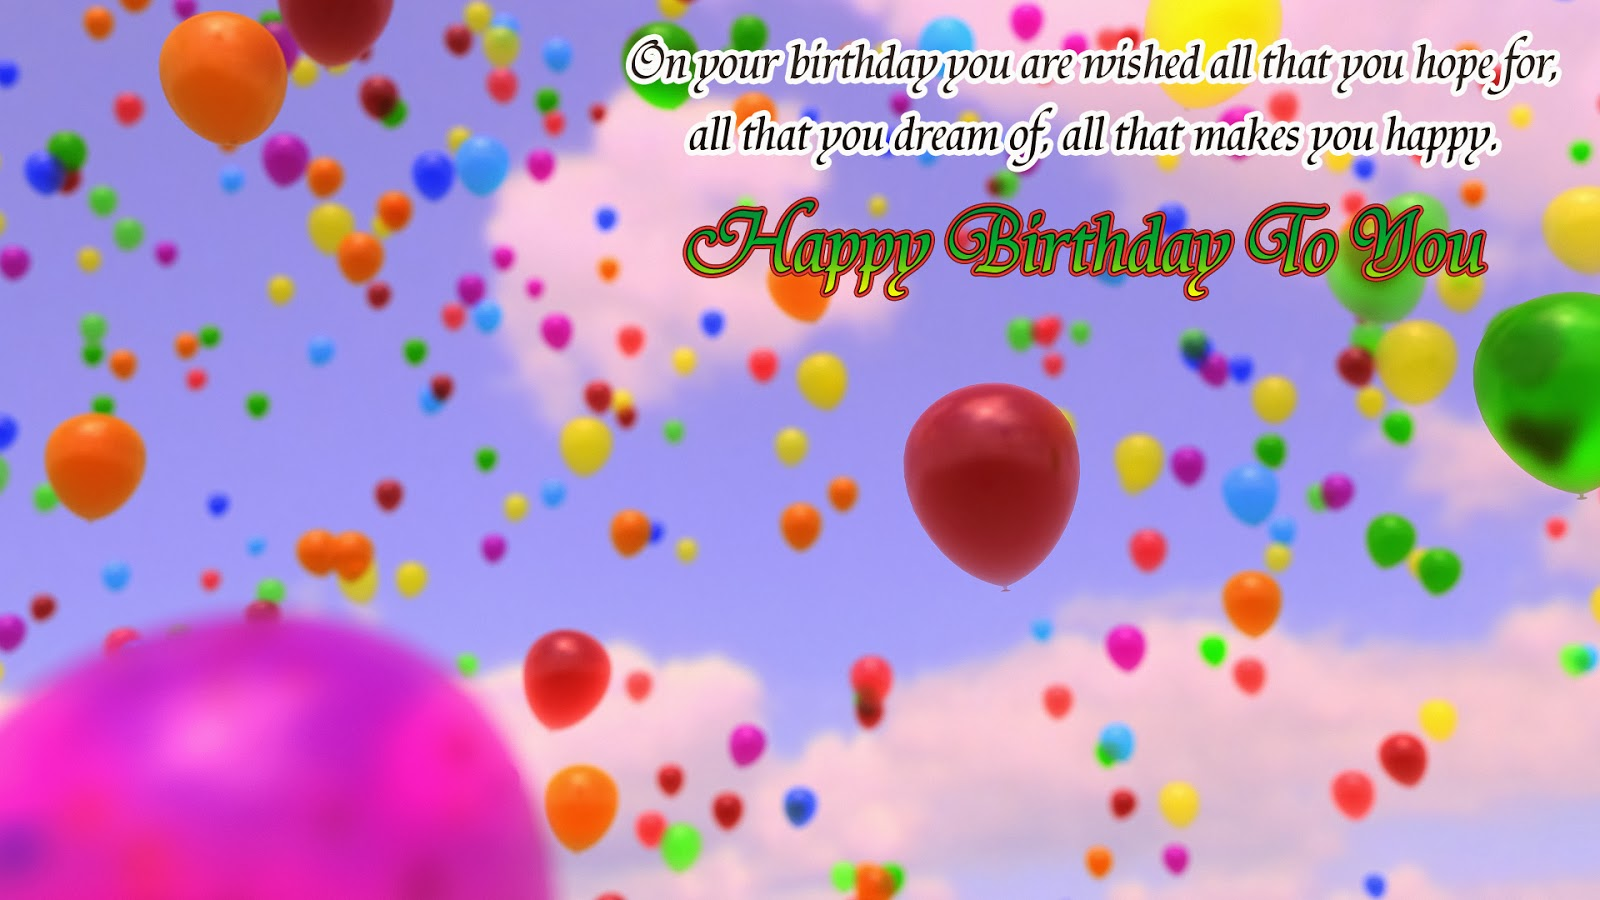 Happy Birthday Wishes Images Hd ~ Happy birthday wishes hd wallpapers